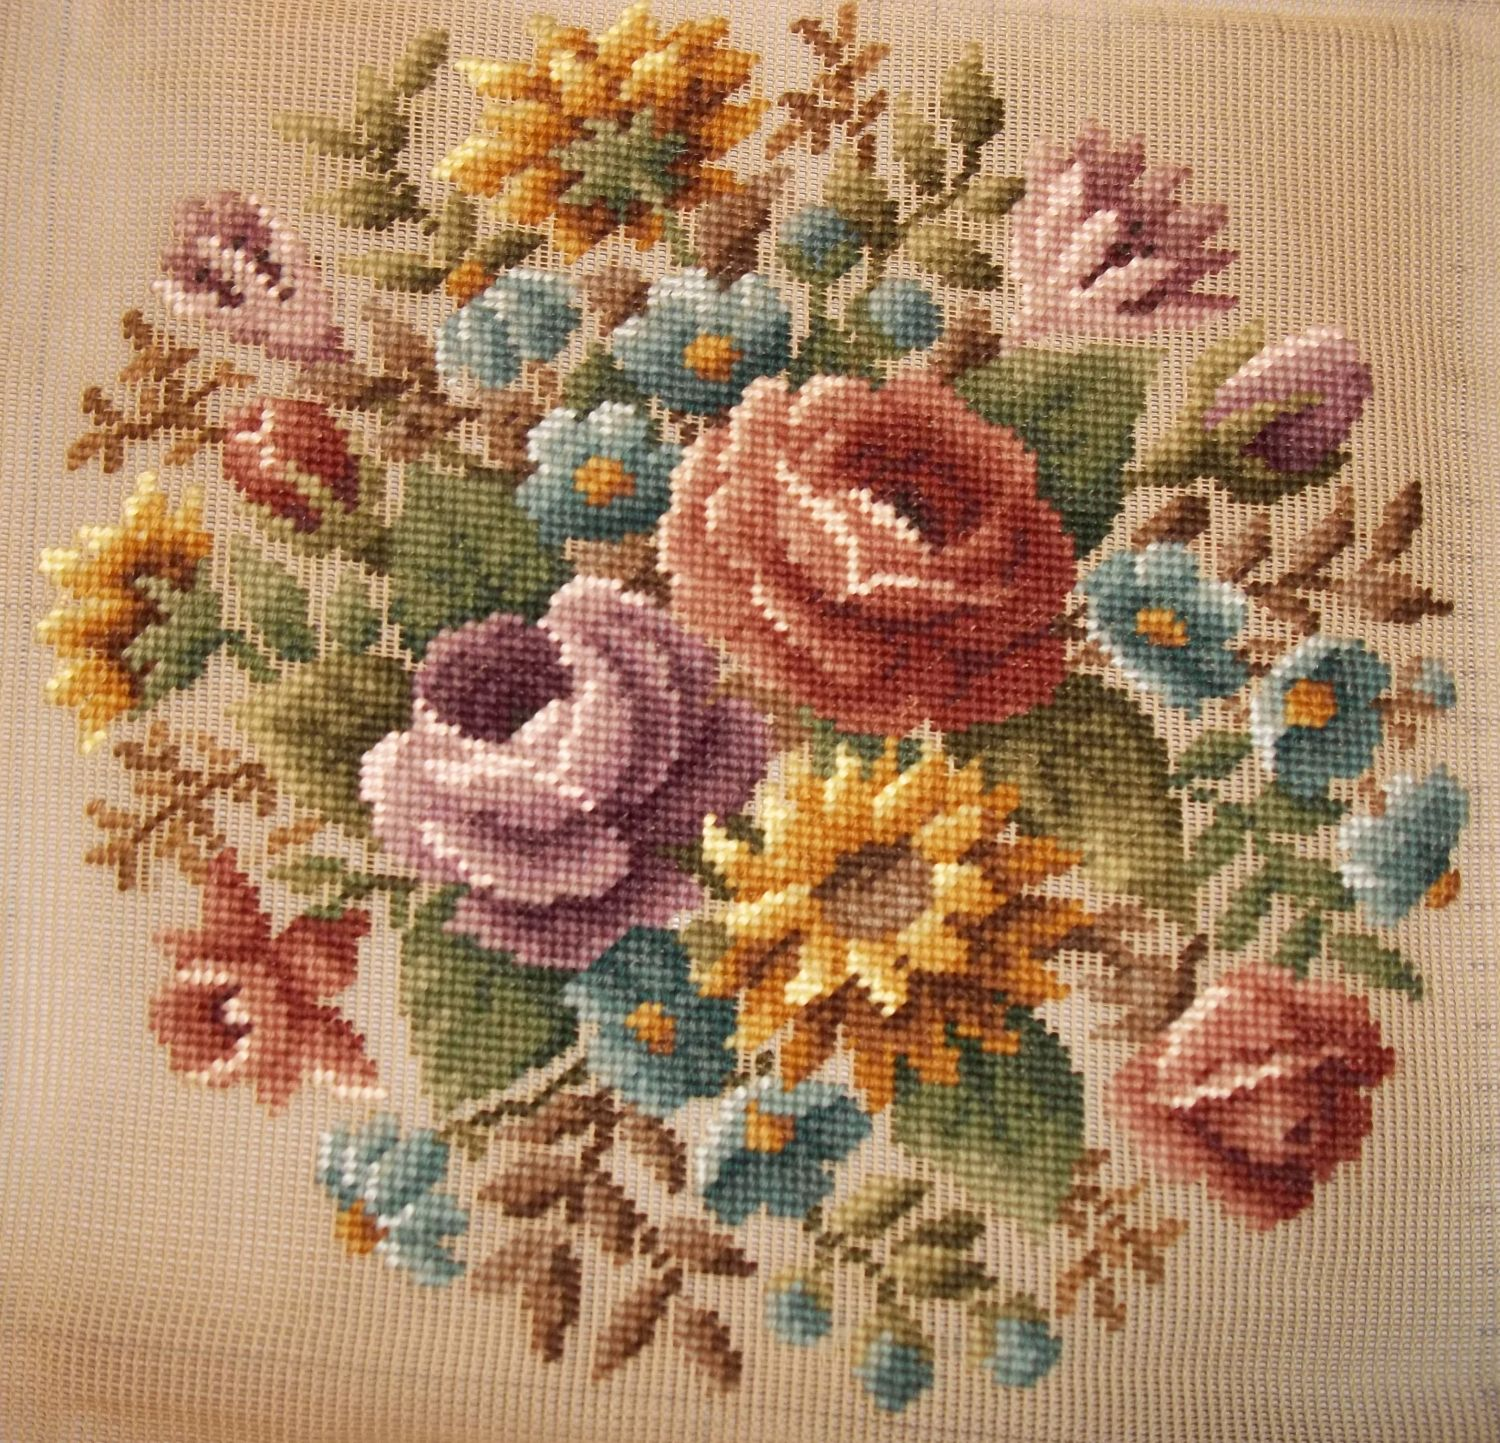 large needlepoint